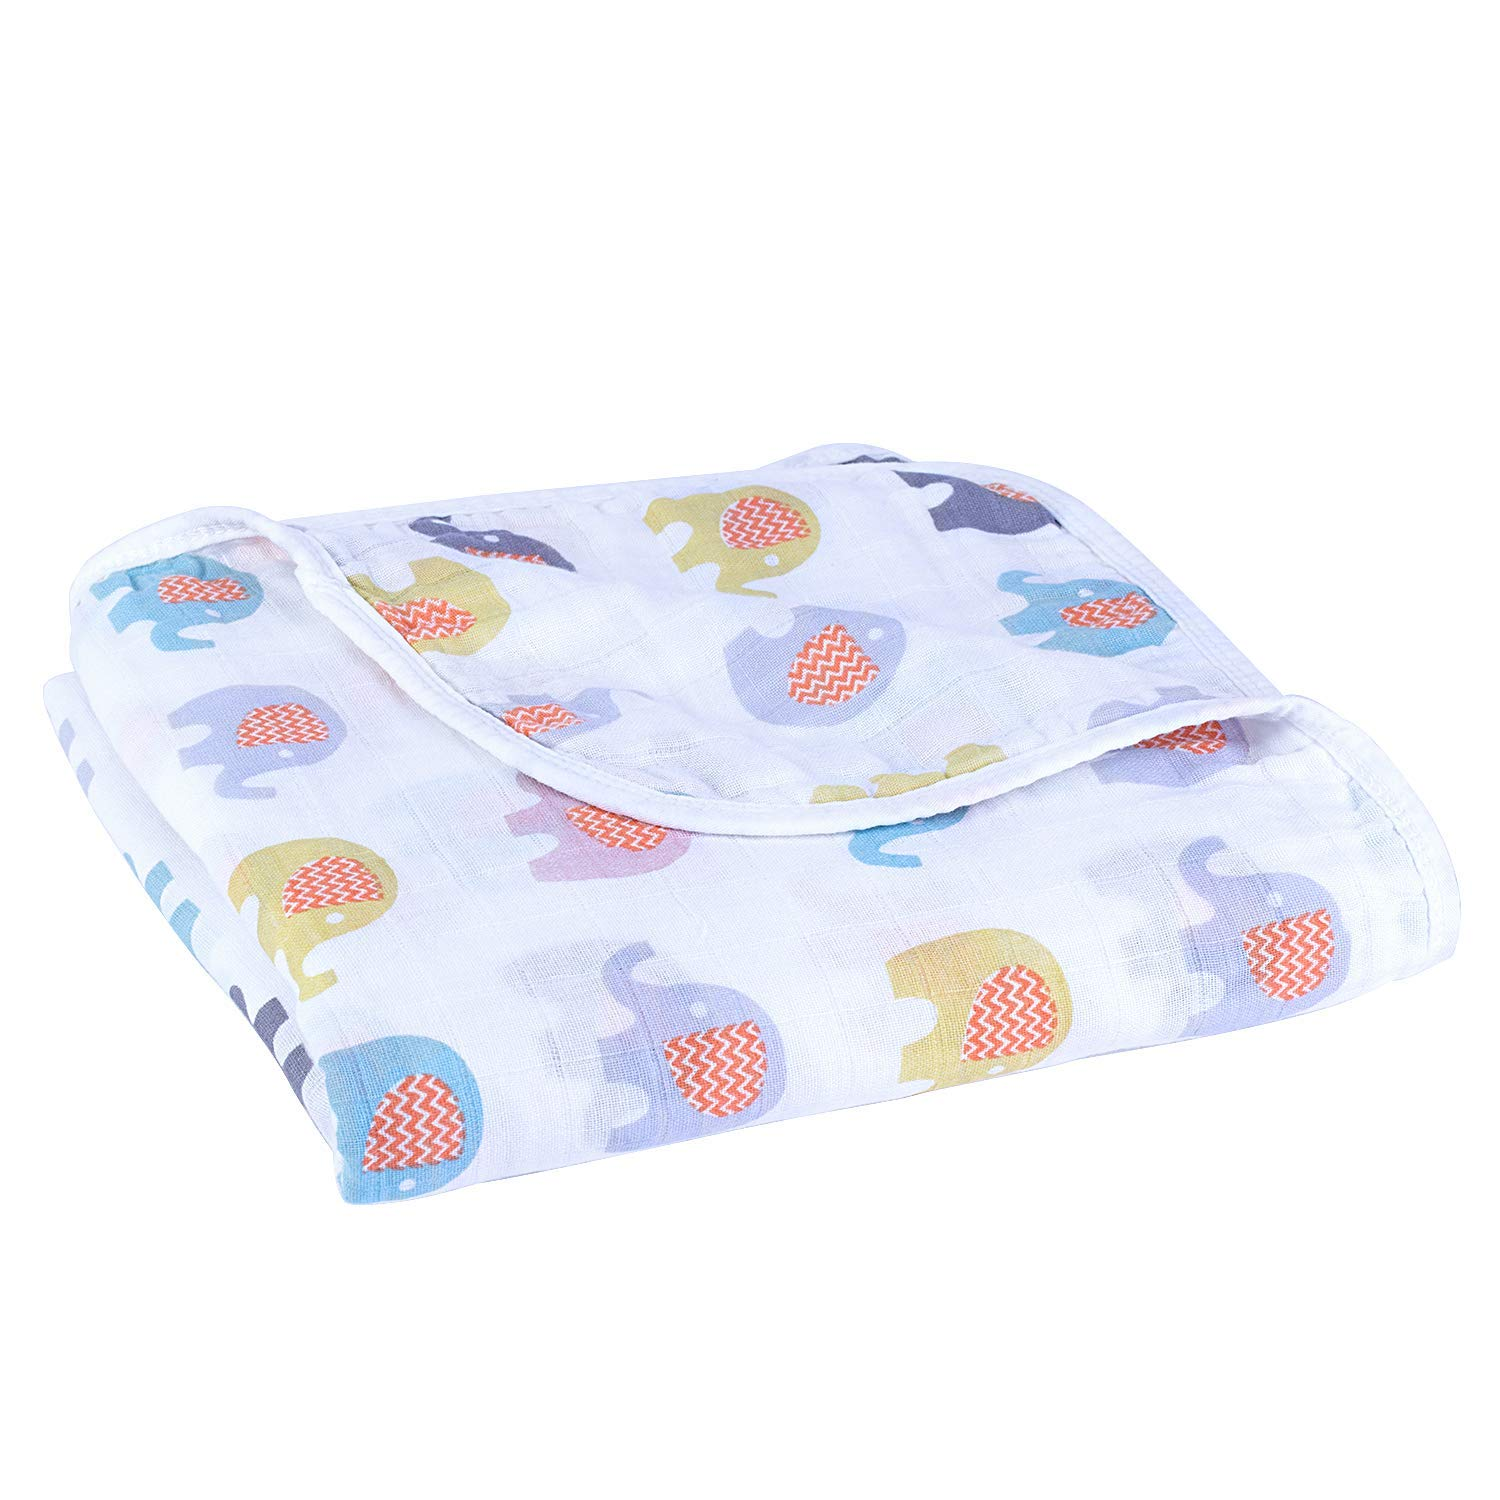 Baby Cotton Muslin Swaddle Blankets - 100% Cotton 4 Layer Super Soft & Breathable Receiving Blankets, 44 x 44 inch (Elephant)